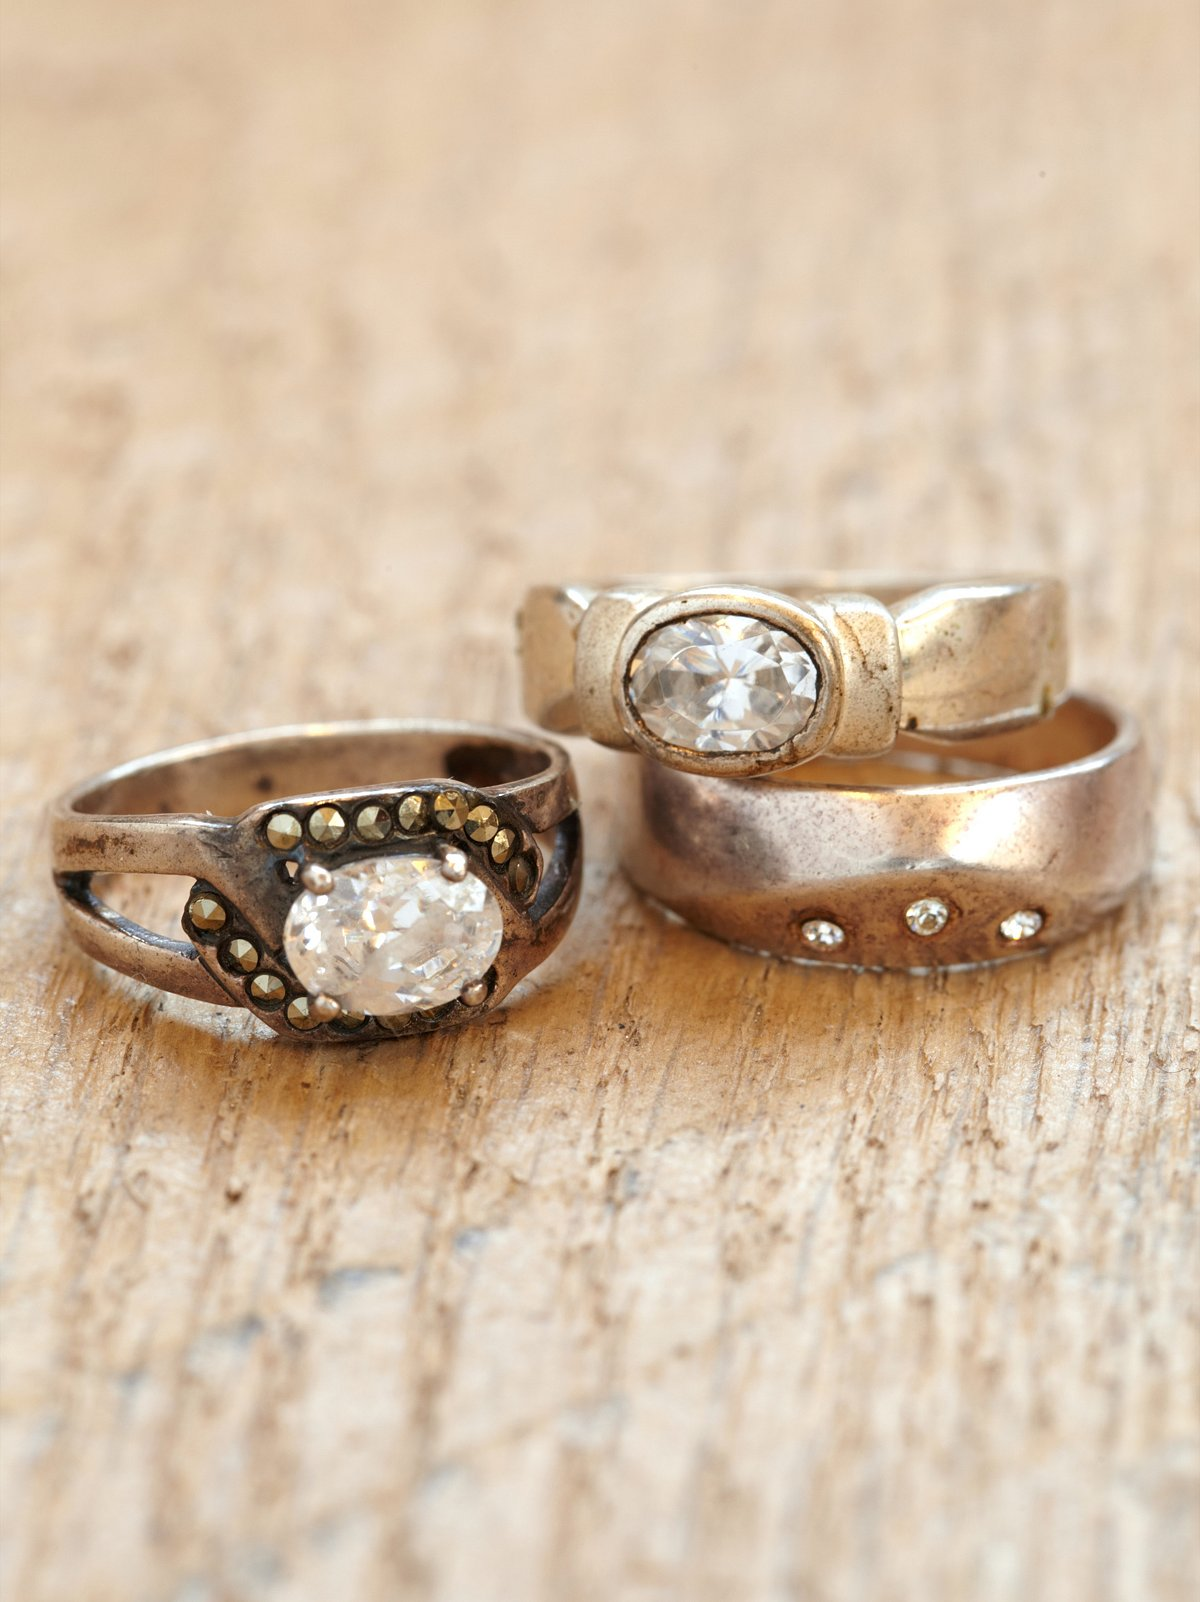 Vintage Collection of Rings